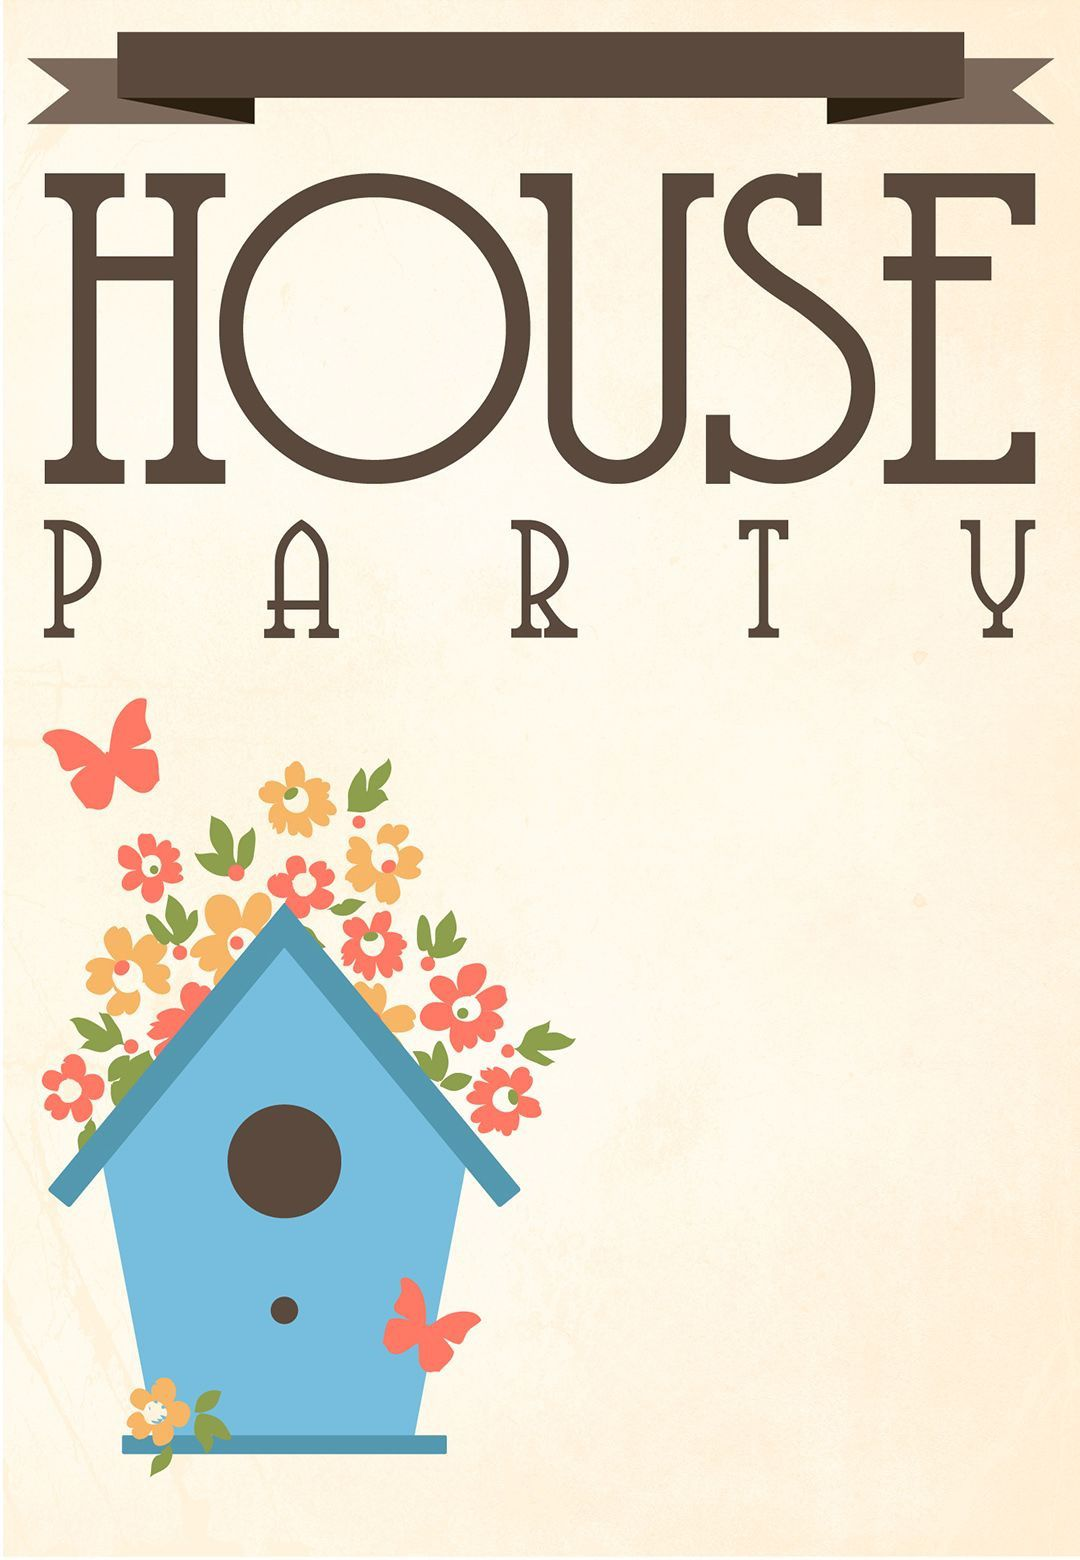 004 Rare Housewarming Party Invite Template Highest Clarity  Templates Invitation Maker EditableFull